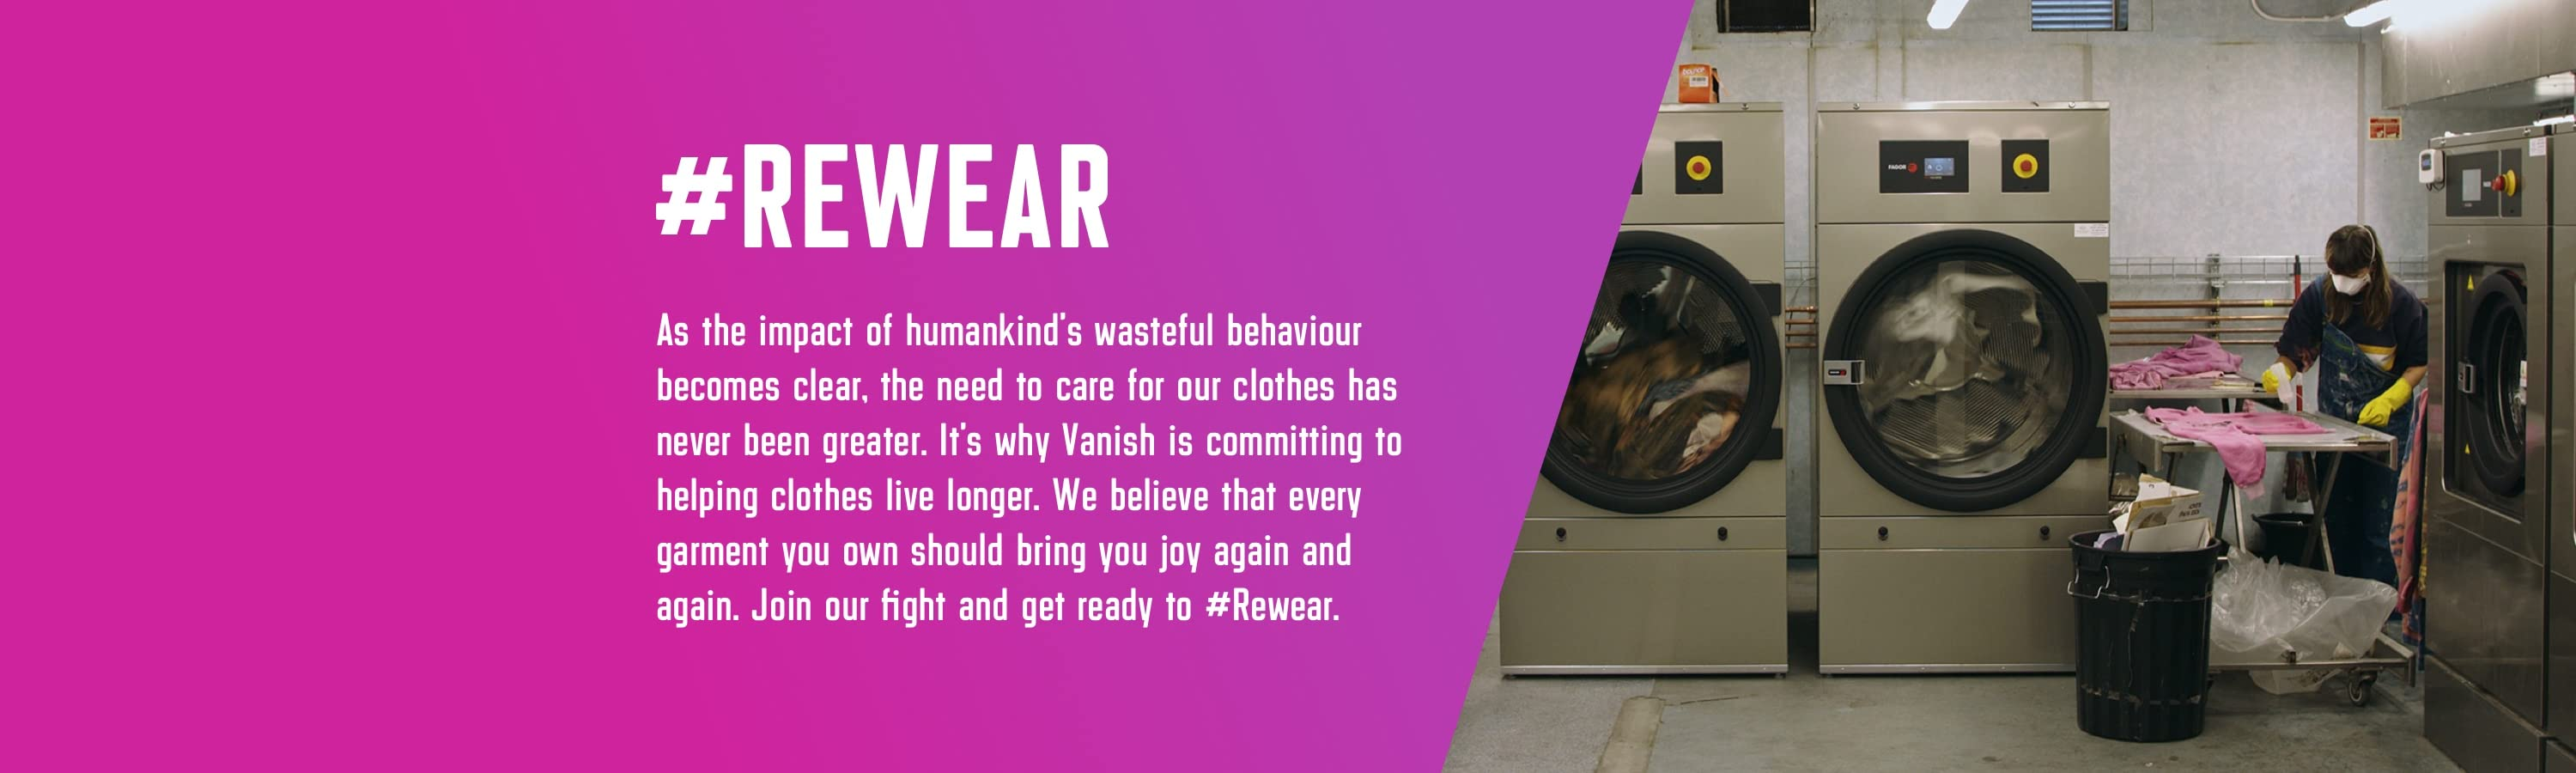 #Rewear.  As the impact of humankind's wasteful behaviour becomes clear, the need to care for our clothes has never been greater. It's why Vanish is committing to helping clothes live longer. We believe that every garment you own should bring you joy again and again. Join our fight and get ready to #Rewear.